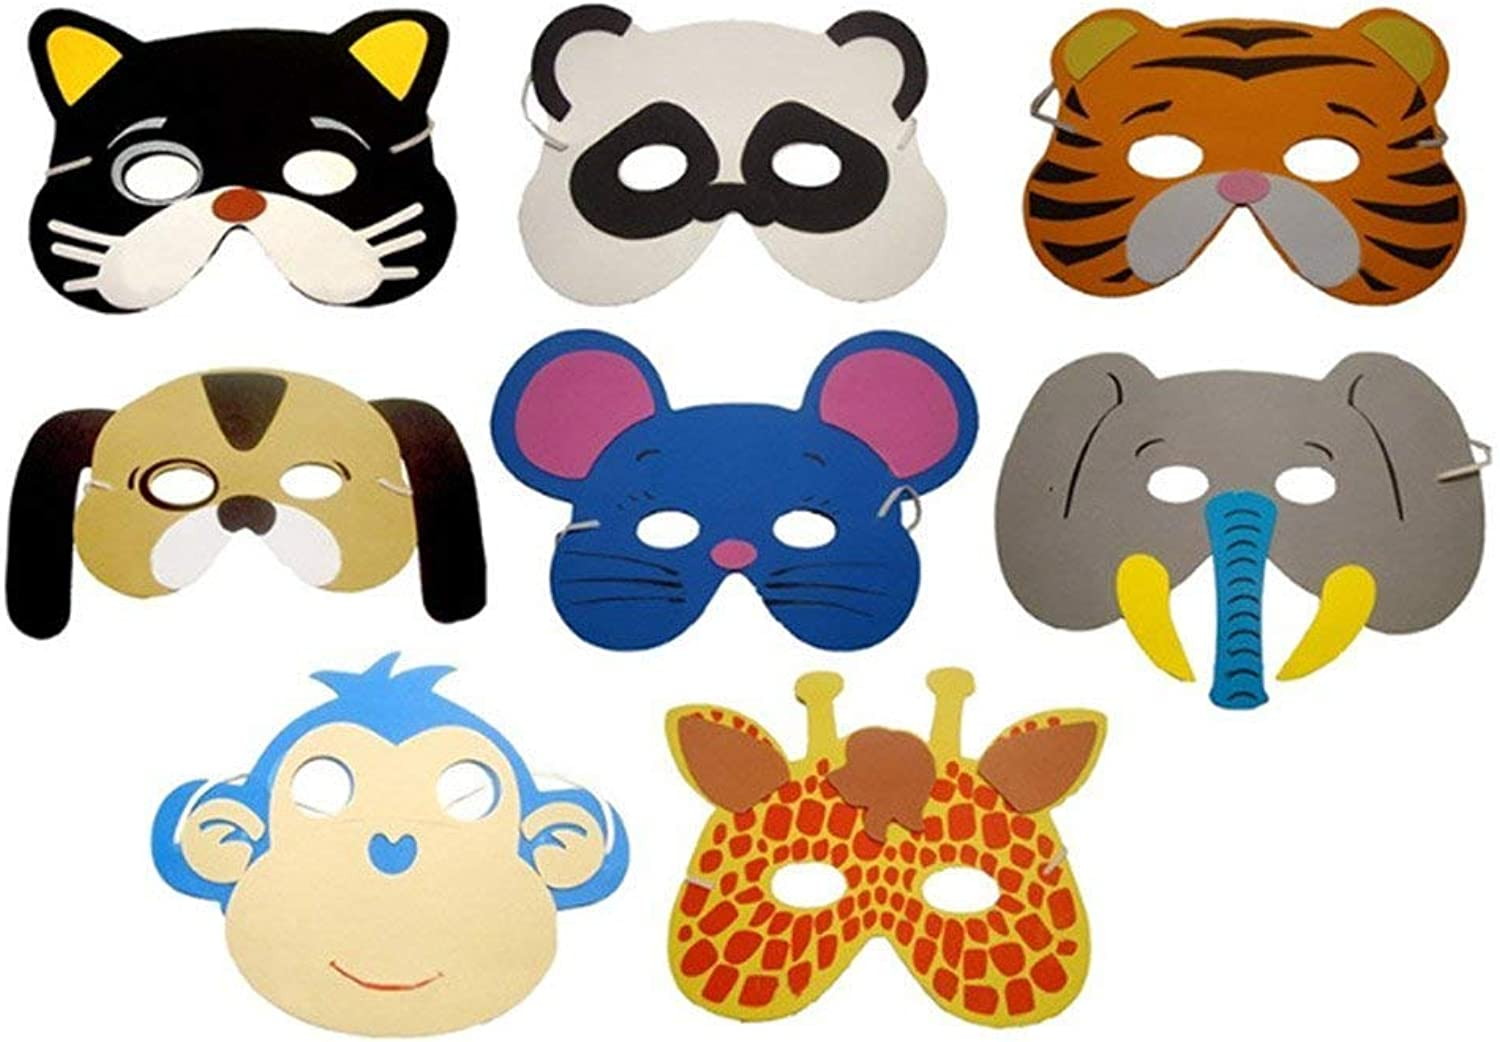 12 Assortment Kids Foam Animal Face Masks Halloween Masks DressUp Party Accessory for Birthday Party Favors Costume